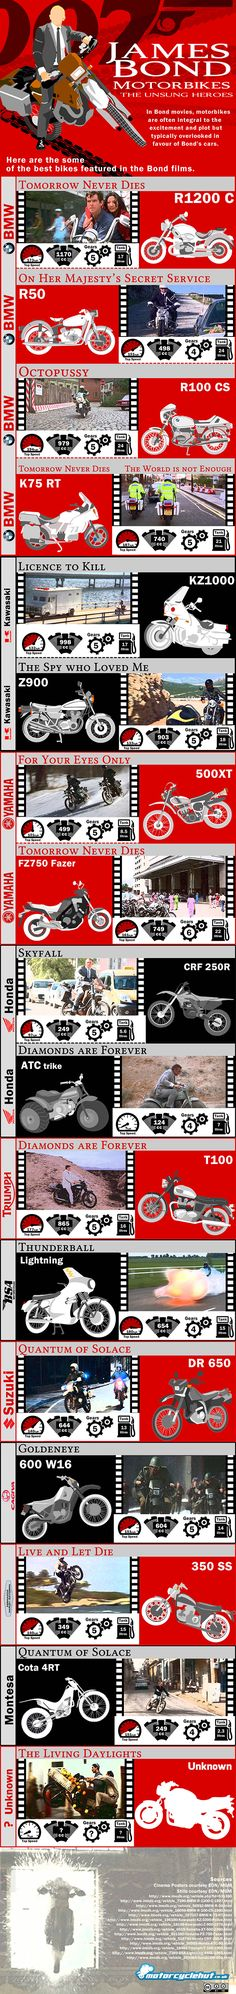 The James Bond Bike Infographic James Bond Party, Bond Cars, Motorcycle Posters, Grand Tour, Vintage Motorcycles, Cool Bikes, Motorbikes, Photos, Movies